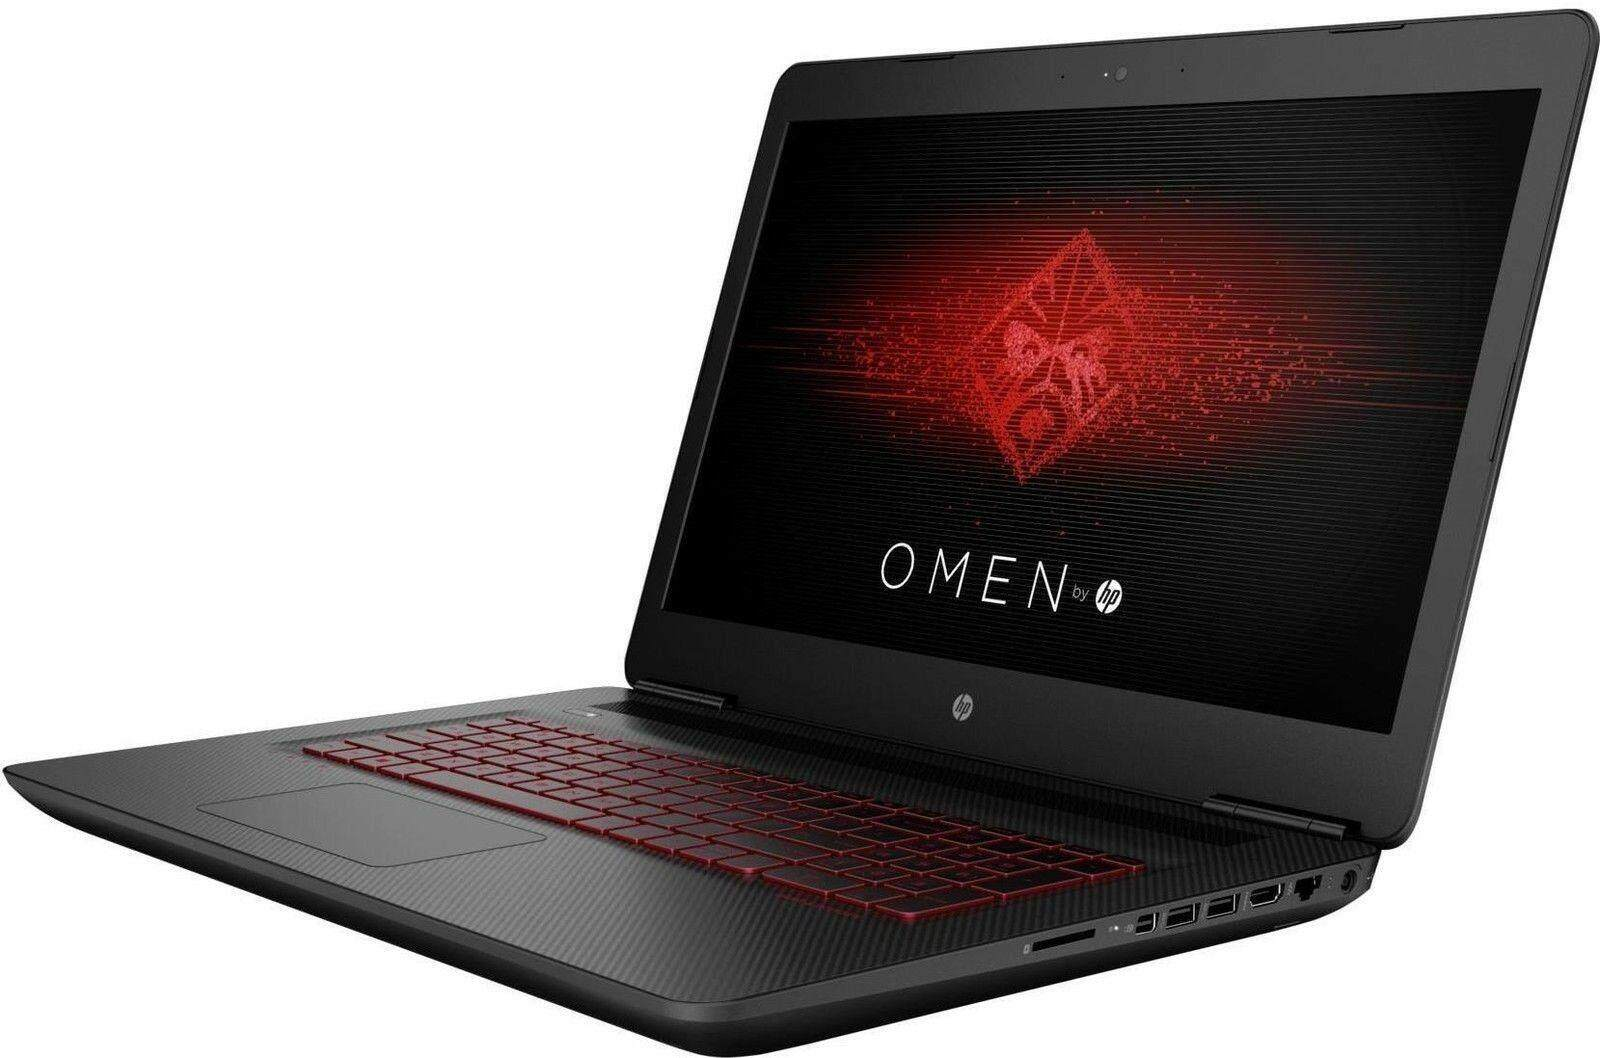 โคราชกรุงเทพมหานคร HP 17.3 Omen Intel Core i7-6700HQ 16GB RAM 512 SSD NVIDIA GEFORCE GTX 1070 8GB